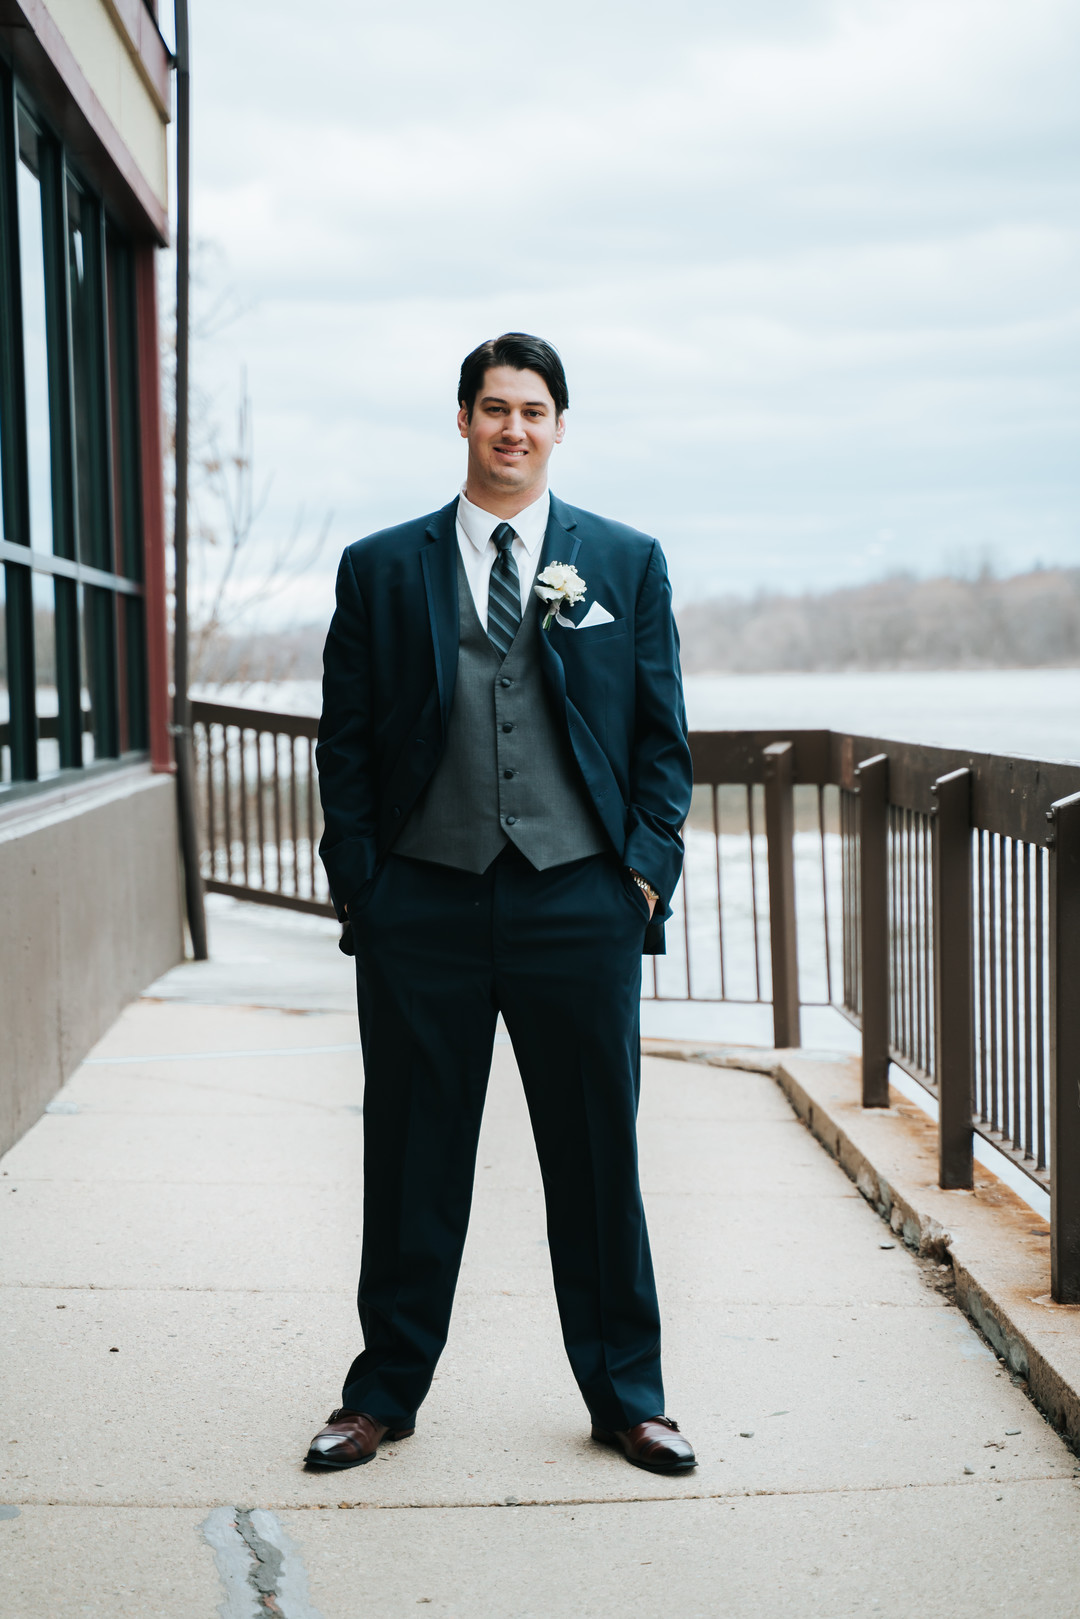 Grooms portrait: Beautiful Illinois wedding at Riverside Receptions captured by Windy City Production. See more wedding ideas at CHItheeWED.com!